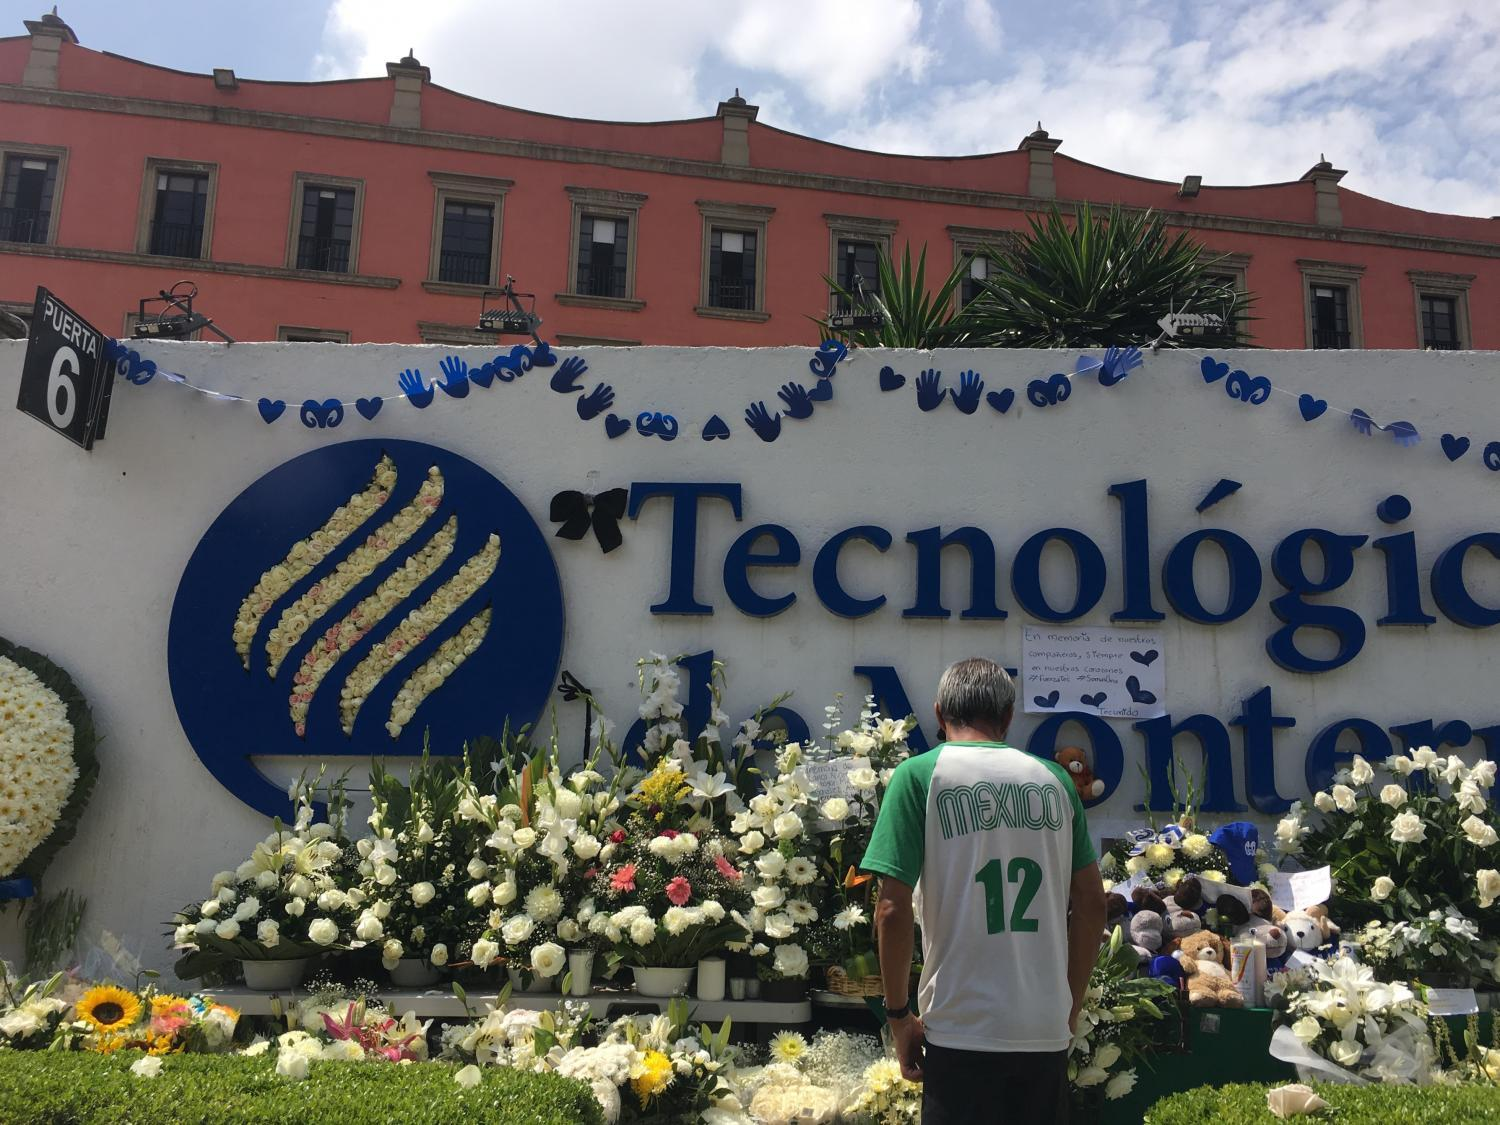 A memorial for the five students killed on the campus of Tecnologico de Monterrey universiity in Mexico City.